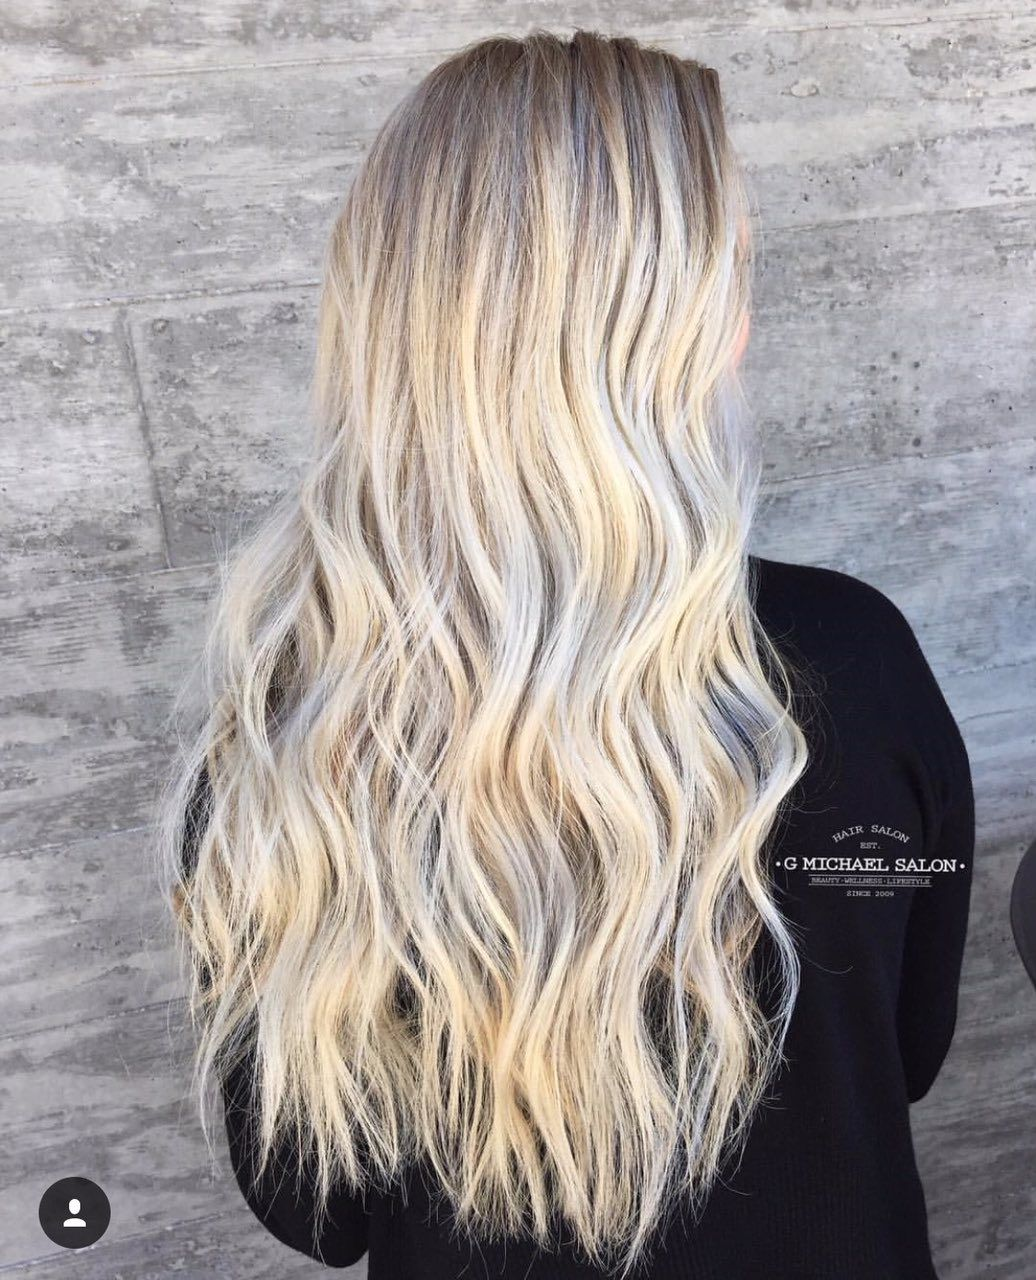 Vanilla Blonde By The Design Team At G Michael Salon Indy S Premier Oribe Salon Indy Indyhair Carmelindiana Indianap Best Hair Salon Hair Cool Hairstyles